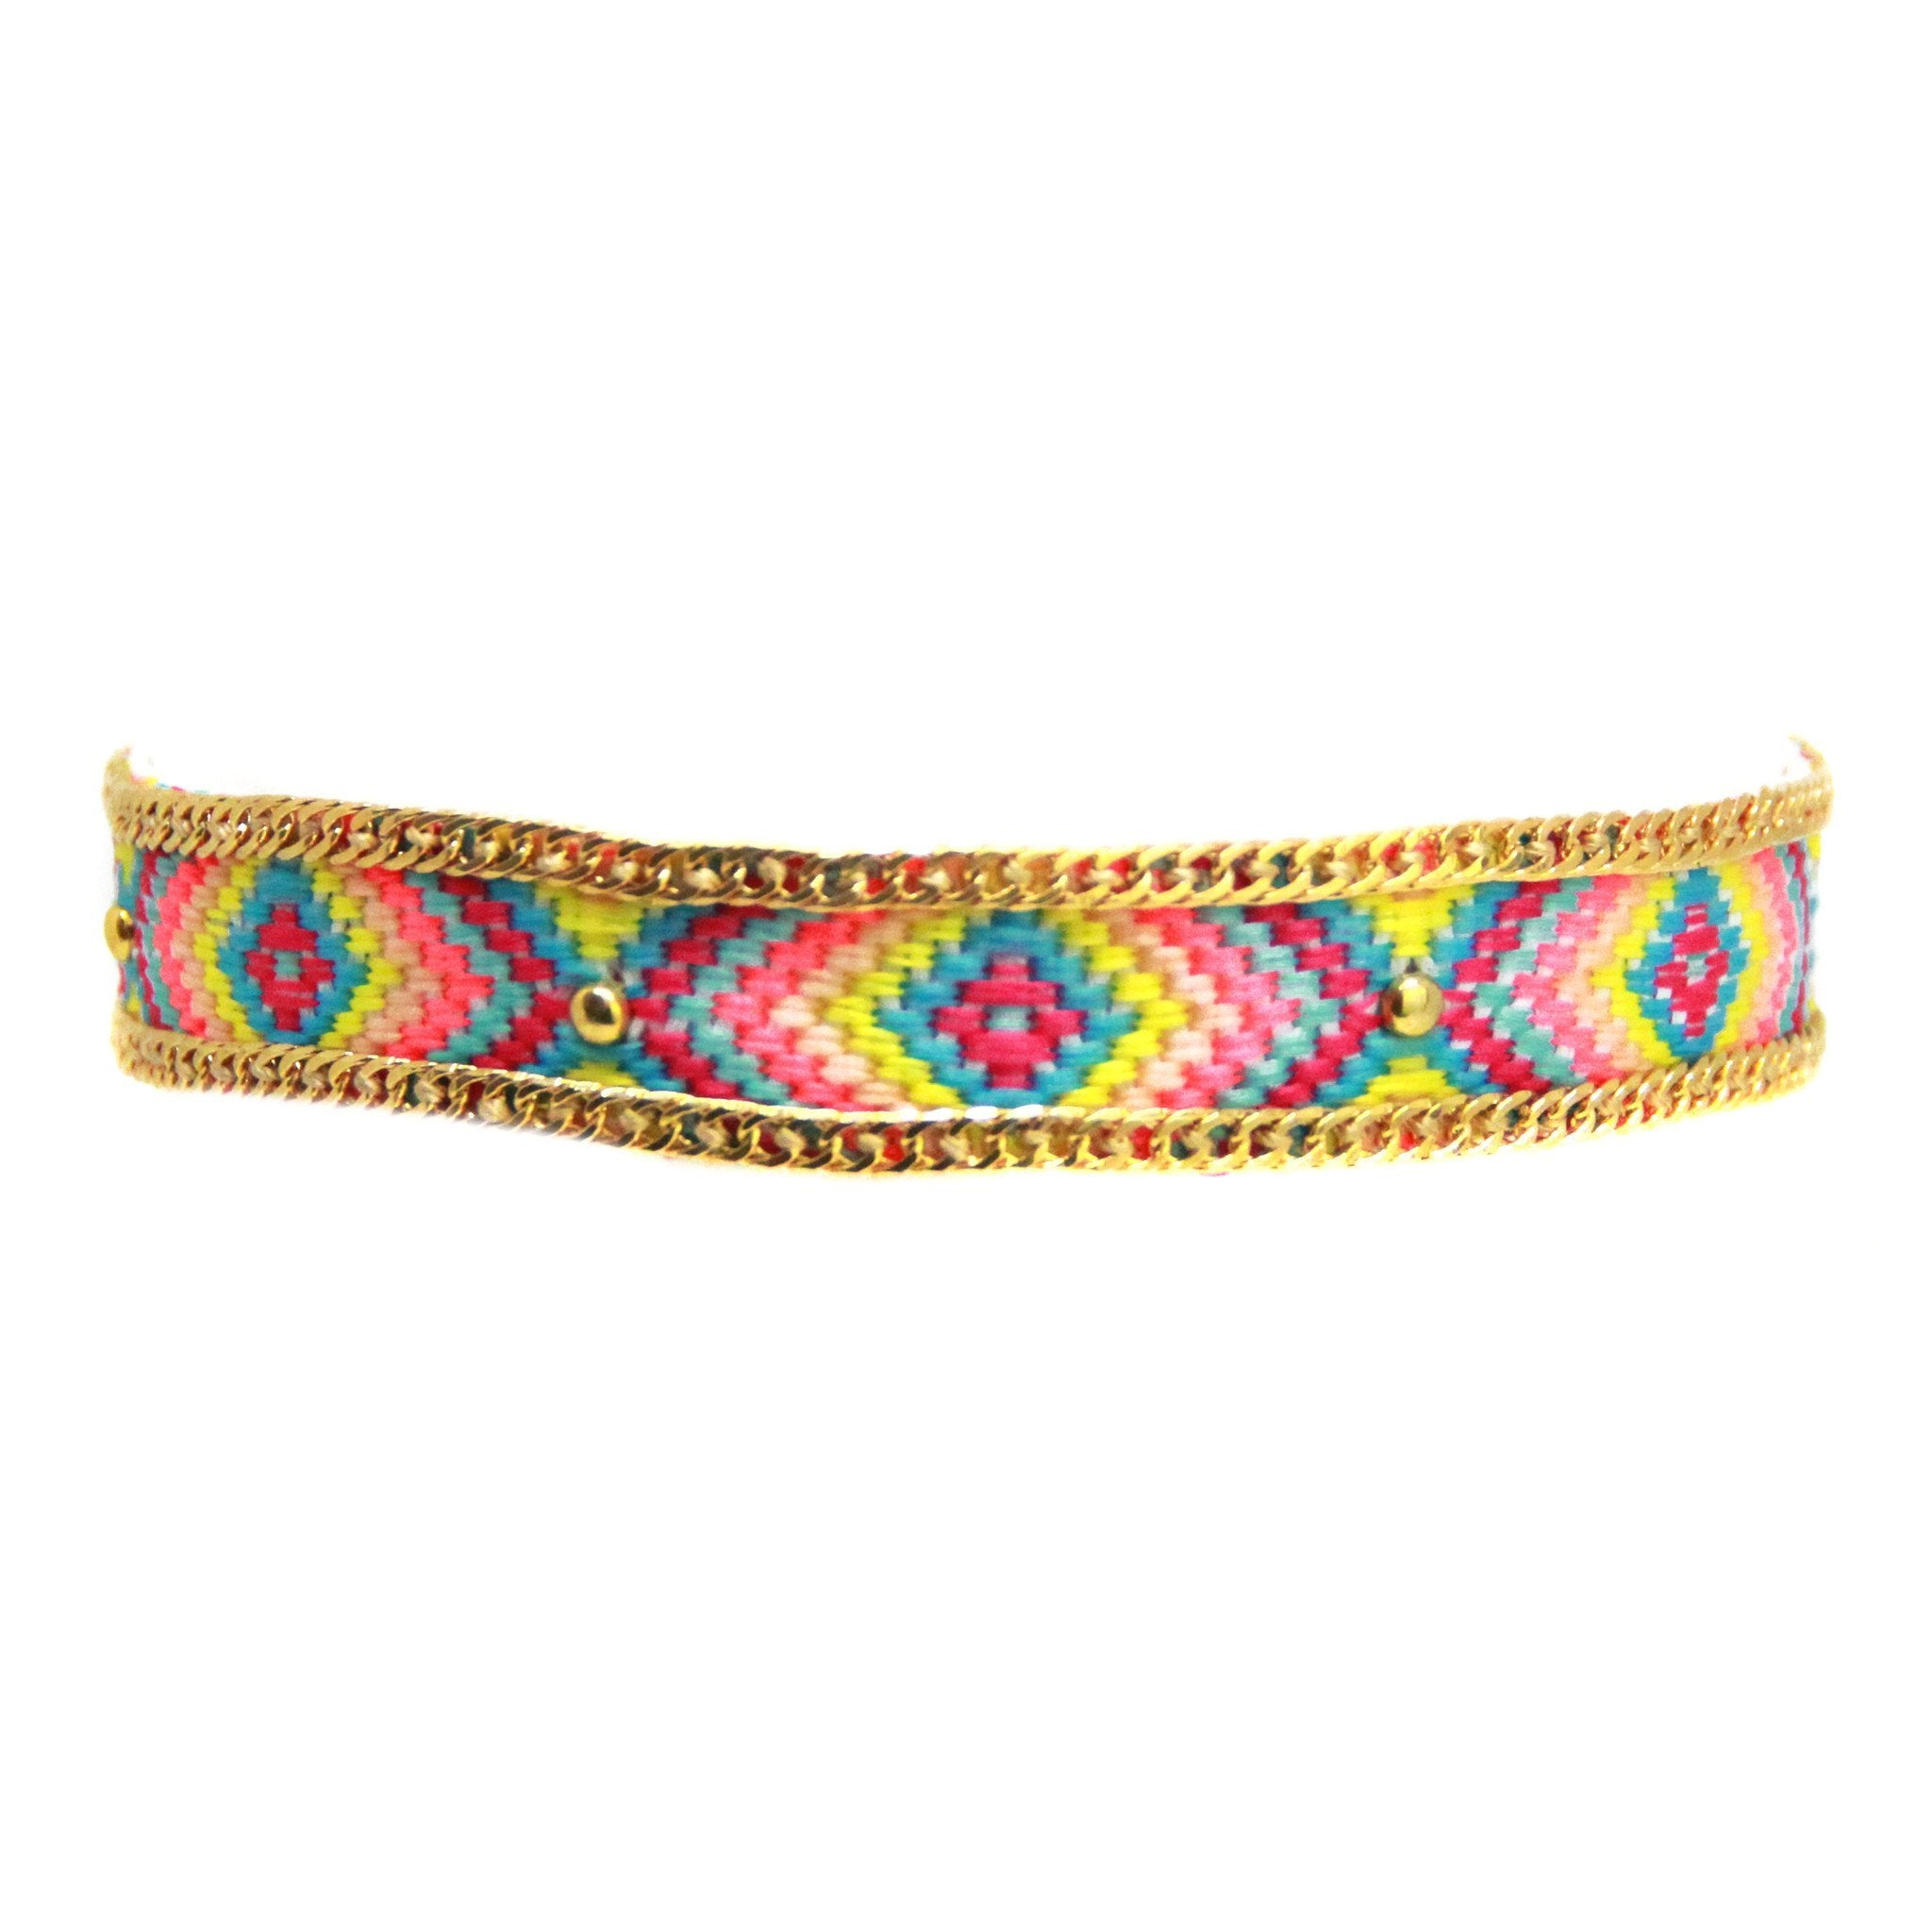 Woman wearing a choker rental from Ettika called Rainbow Gypsy Friendship Choker